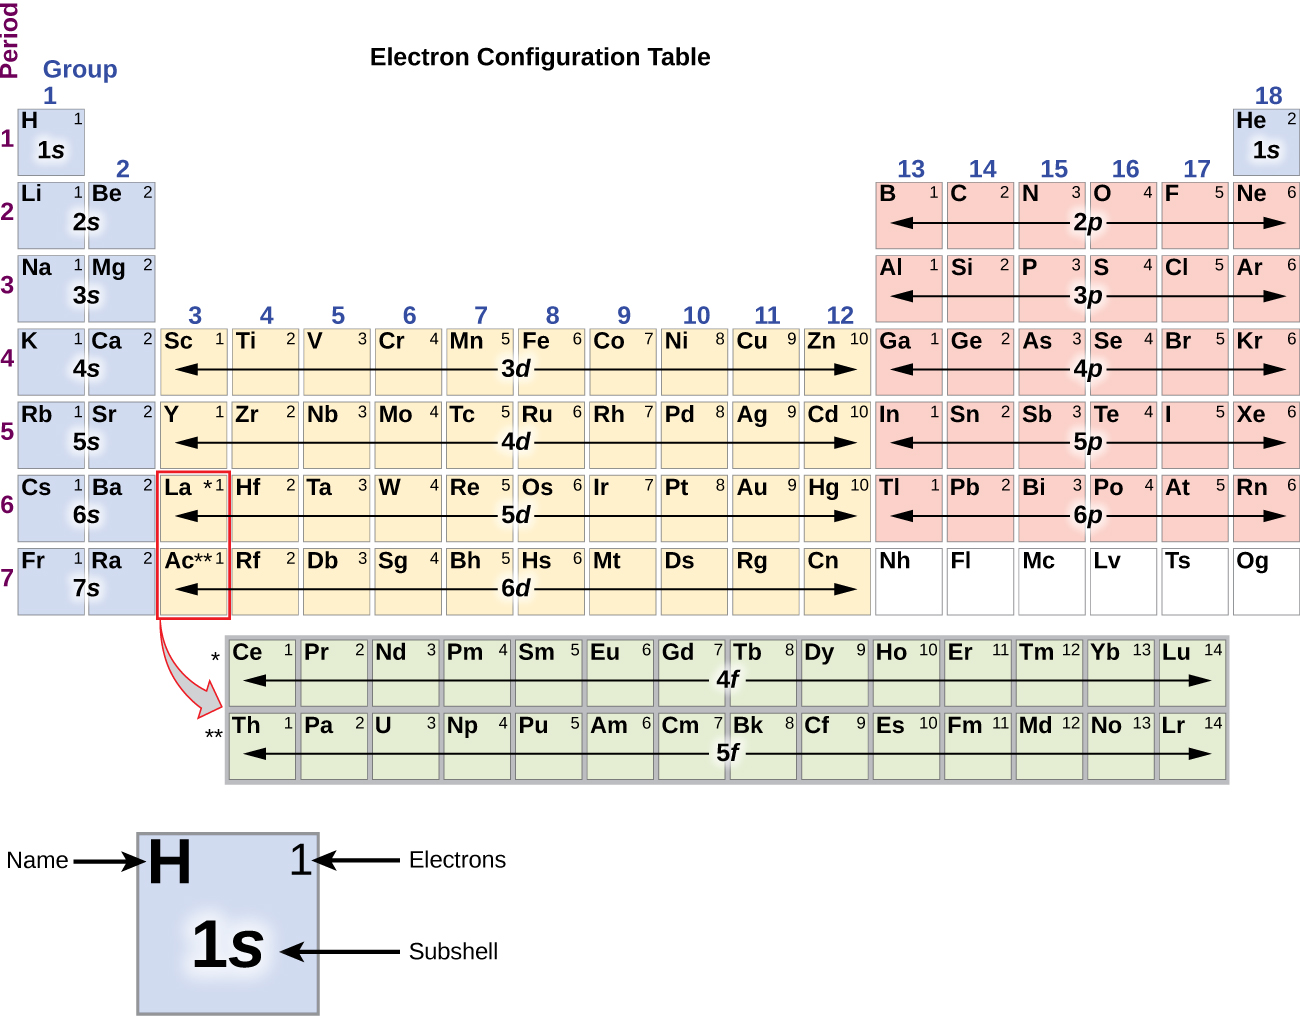 """Aufbau Principle. In this figure, a periodic table is shown that is entitled, """"Electron Configuration Table."""" Beneath the table, a square for the element hydrogen is shown enlarged to provide detail. The element symbol, H, is placed in the upper left corner. In the upper right is the number of electrons, 1. The lower central portion of the element square contains the subshell, 1s. Helium and elements in groups 1 and 2 are shaded blue. In this region, the rows are labeled 1s through 7s moving down the table. Groups 3 through 12 are shaded orange, and the rows are labeled 3d through 6d moving down the table. Groups 13 through 18, except helium, are shaded pink and are labeled 2p through 6p moving down the table. The lanthanide and actinide series across the bottom of the table are shaded grey and are labeled 4f and 5f, respectively."""